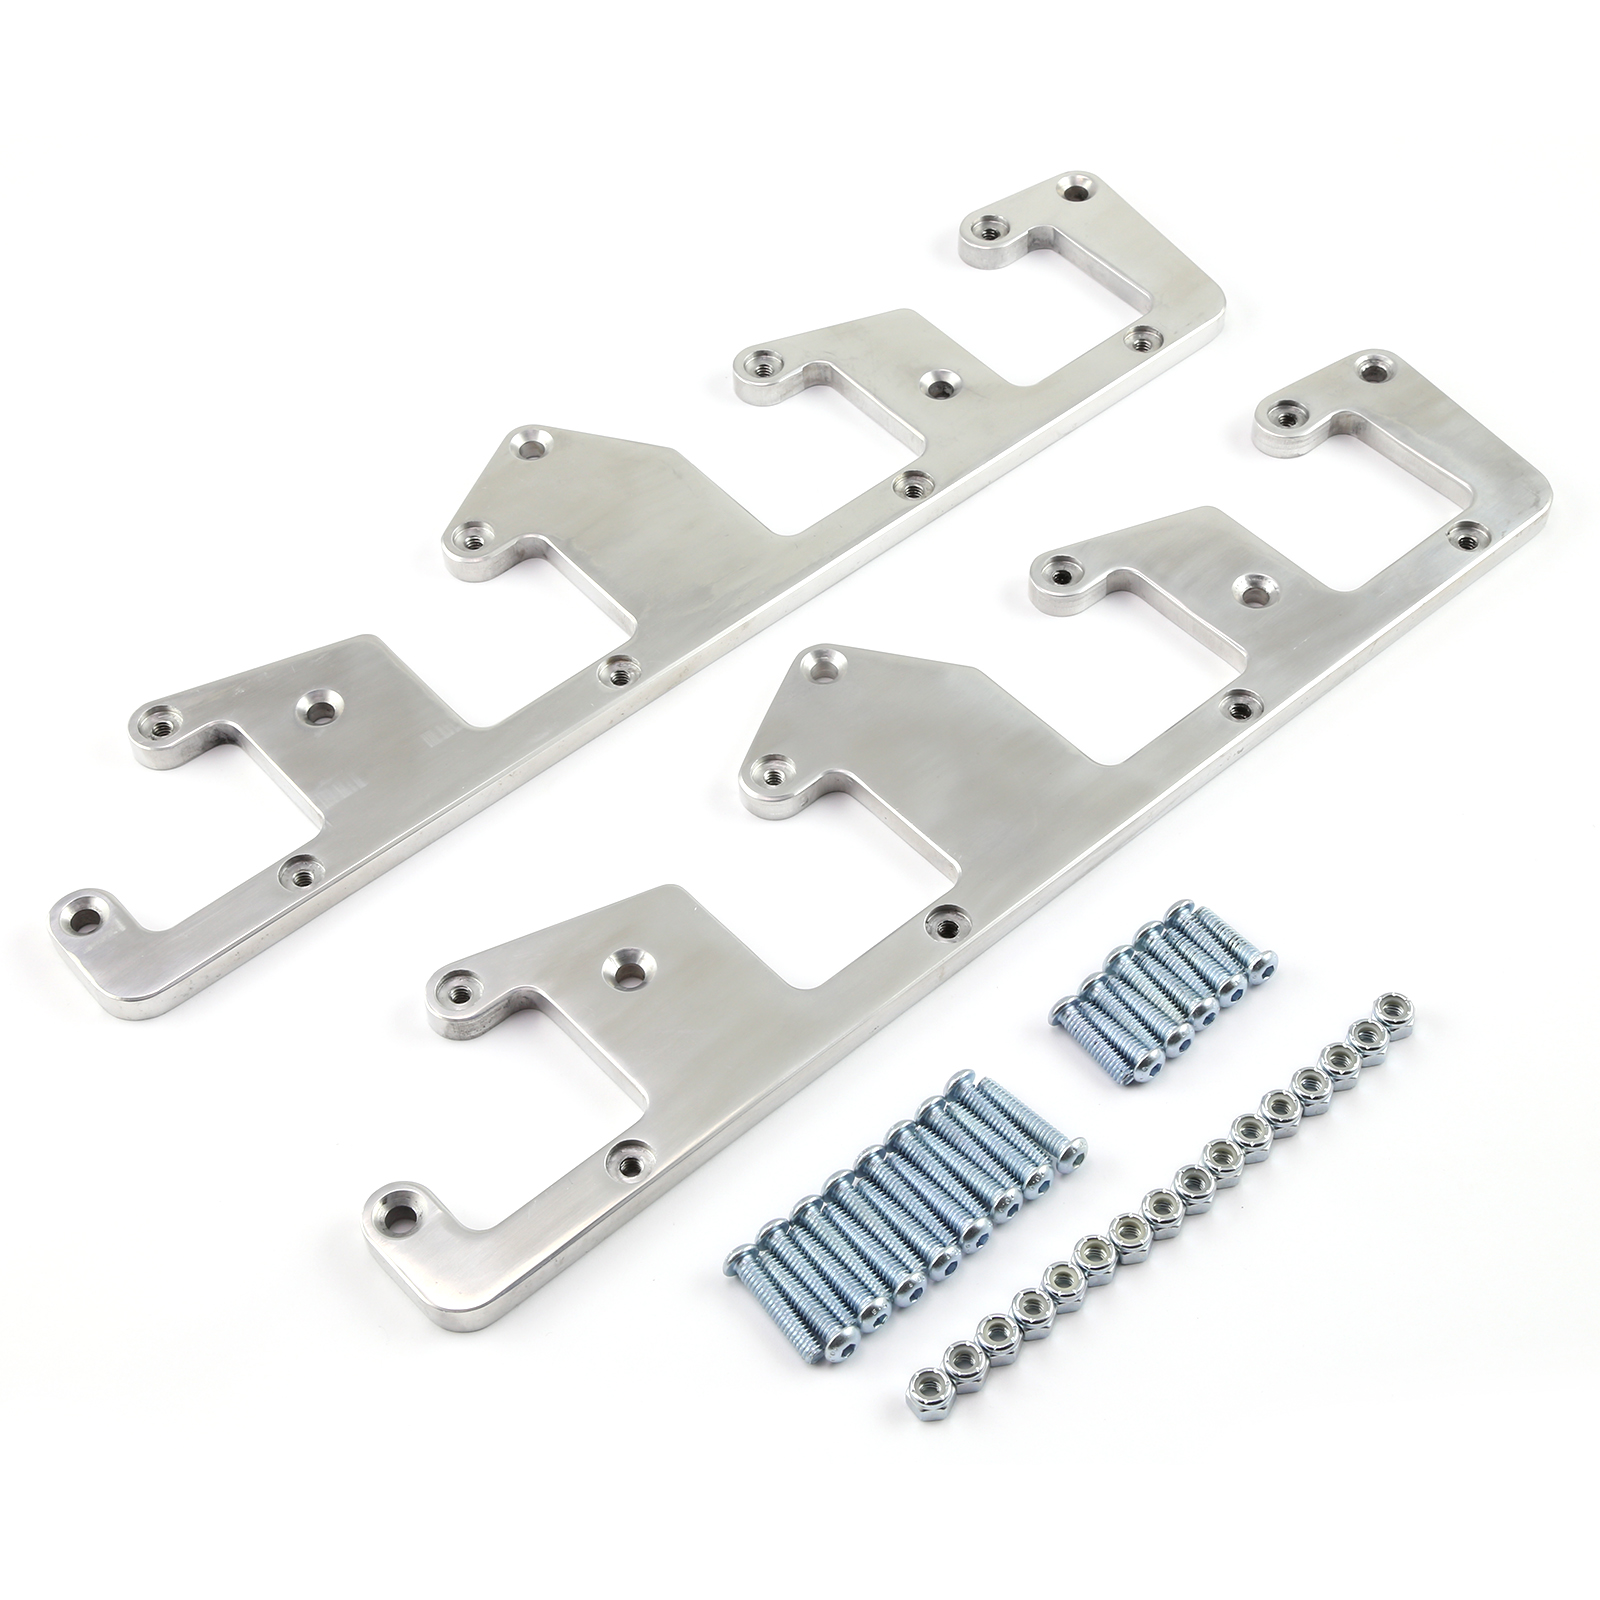 Gm Ls3 Wiring Diagram Igniter Lsx Ls2 Polished Billet Aluminum Coil Pack Bracket Kit With Hardware